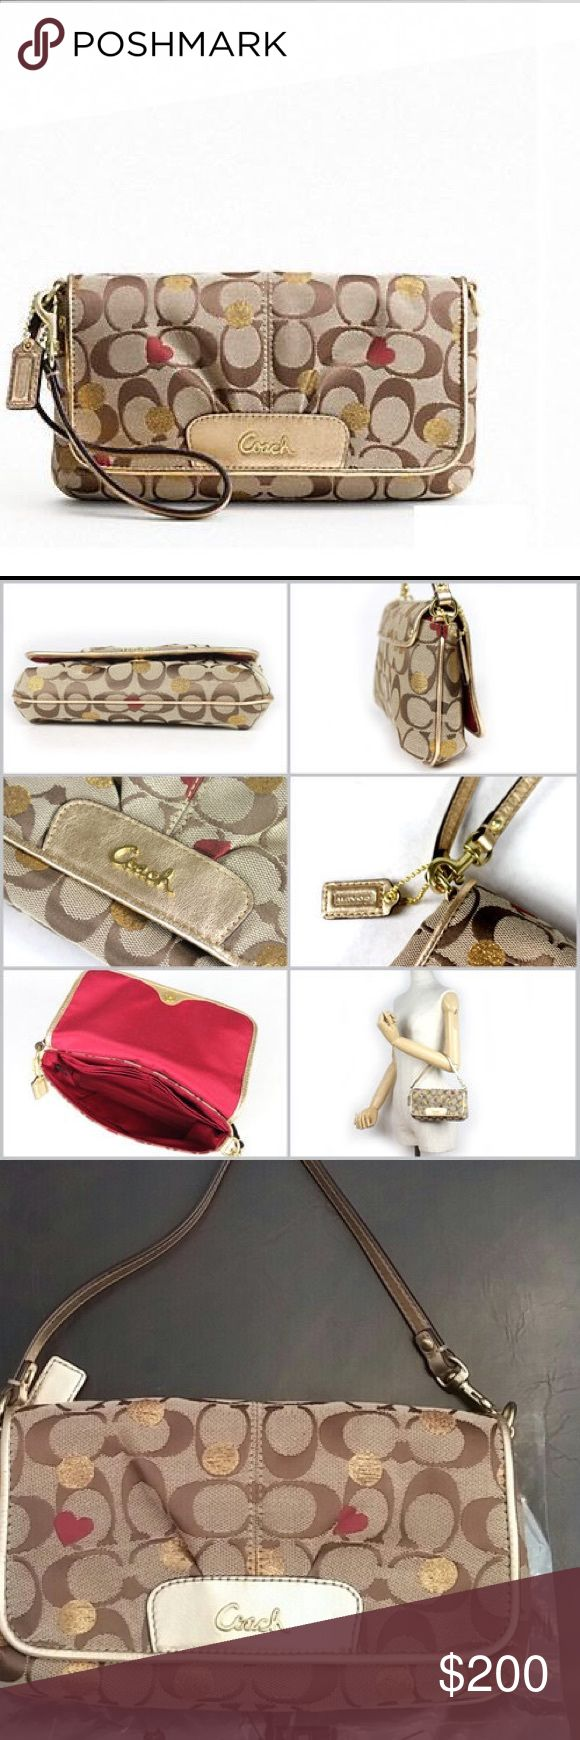 """NWOT coach secret admirer large flap wristlet Brand new .....Signature fabric with leather trim Inside multifunction pockets Flap closure, fabric lining Strap with clip to form a wrist strap or attach to the inside of a bag 8 1/2"""" (L) x 4 3/4"""" (H) x 1 1/2"""" (W) Coach Bags Clutches & Wristlets"""